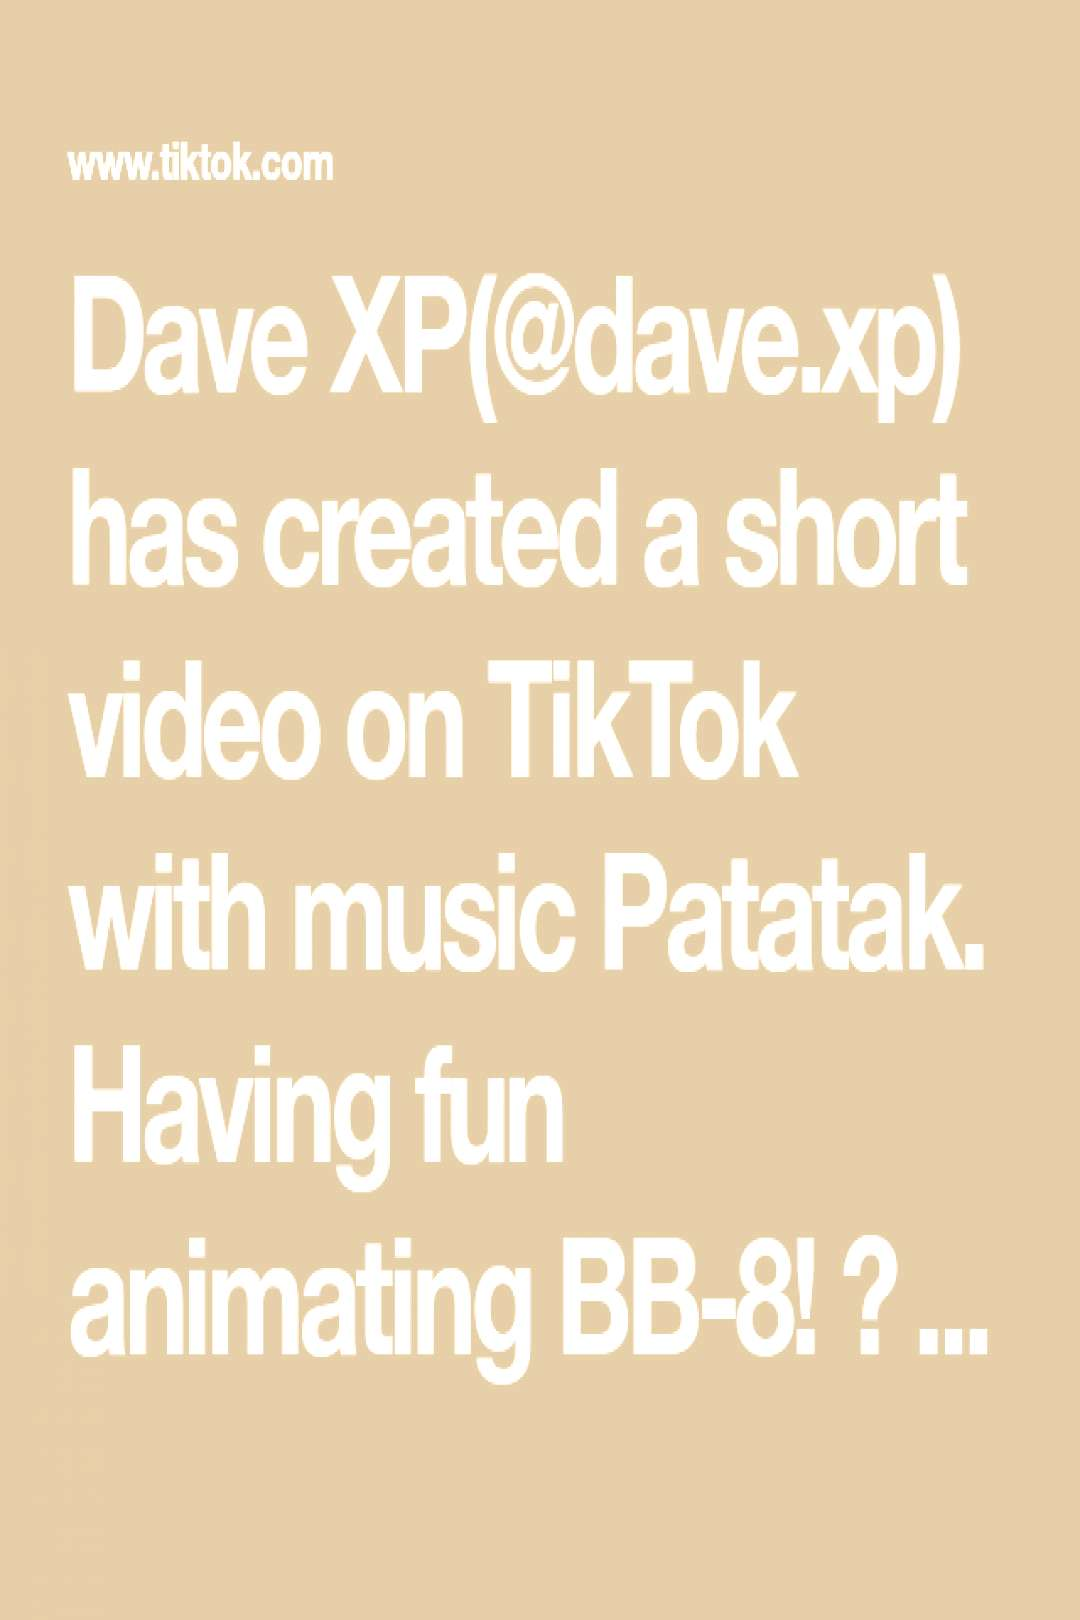 Dave XP(@dave.xp) has created a short video on TikTok with music Patatak. Having fun animating BB-8